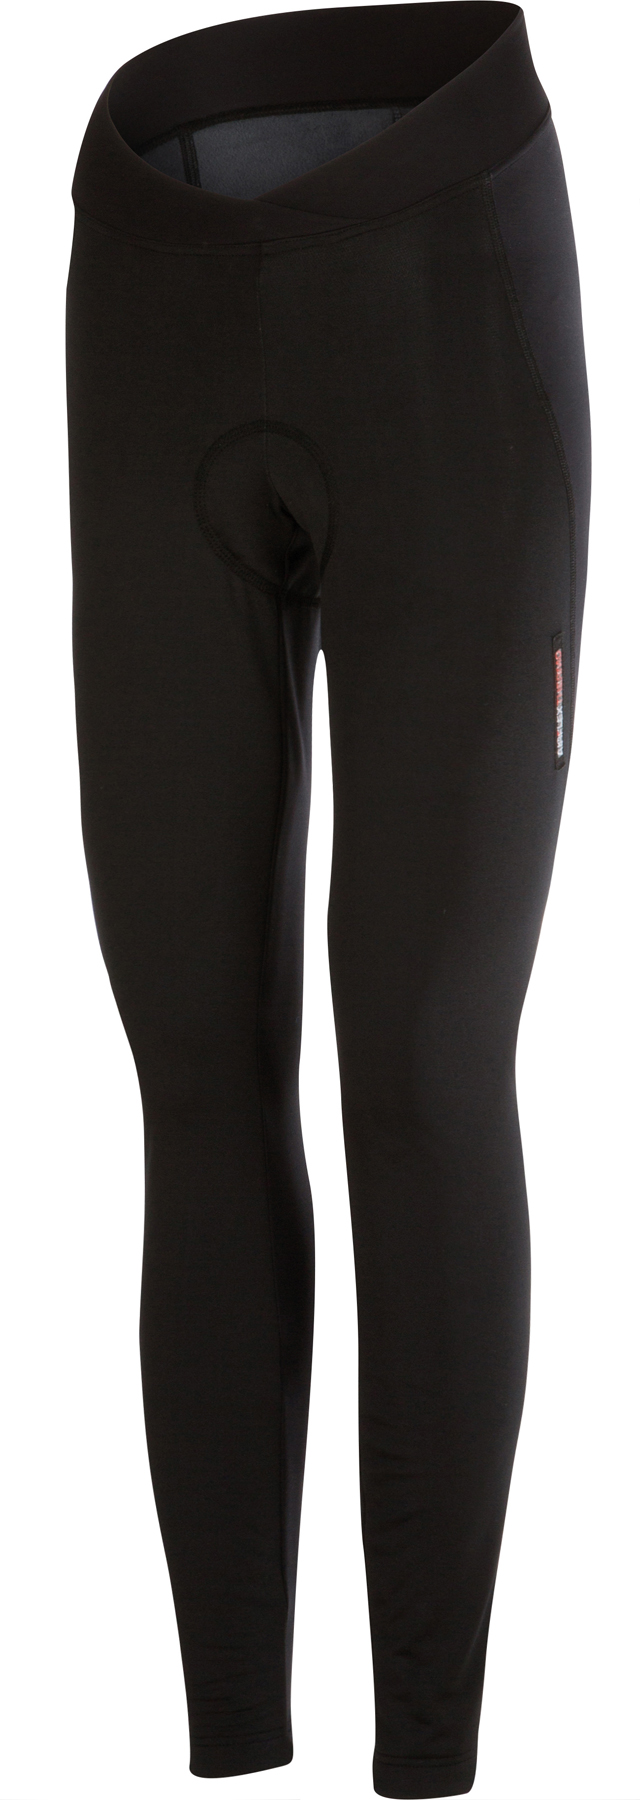 Castelli Women's Meno Wind Tights | Trousers